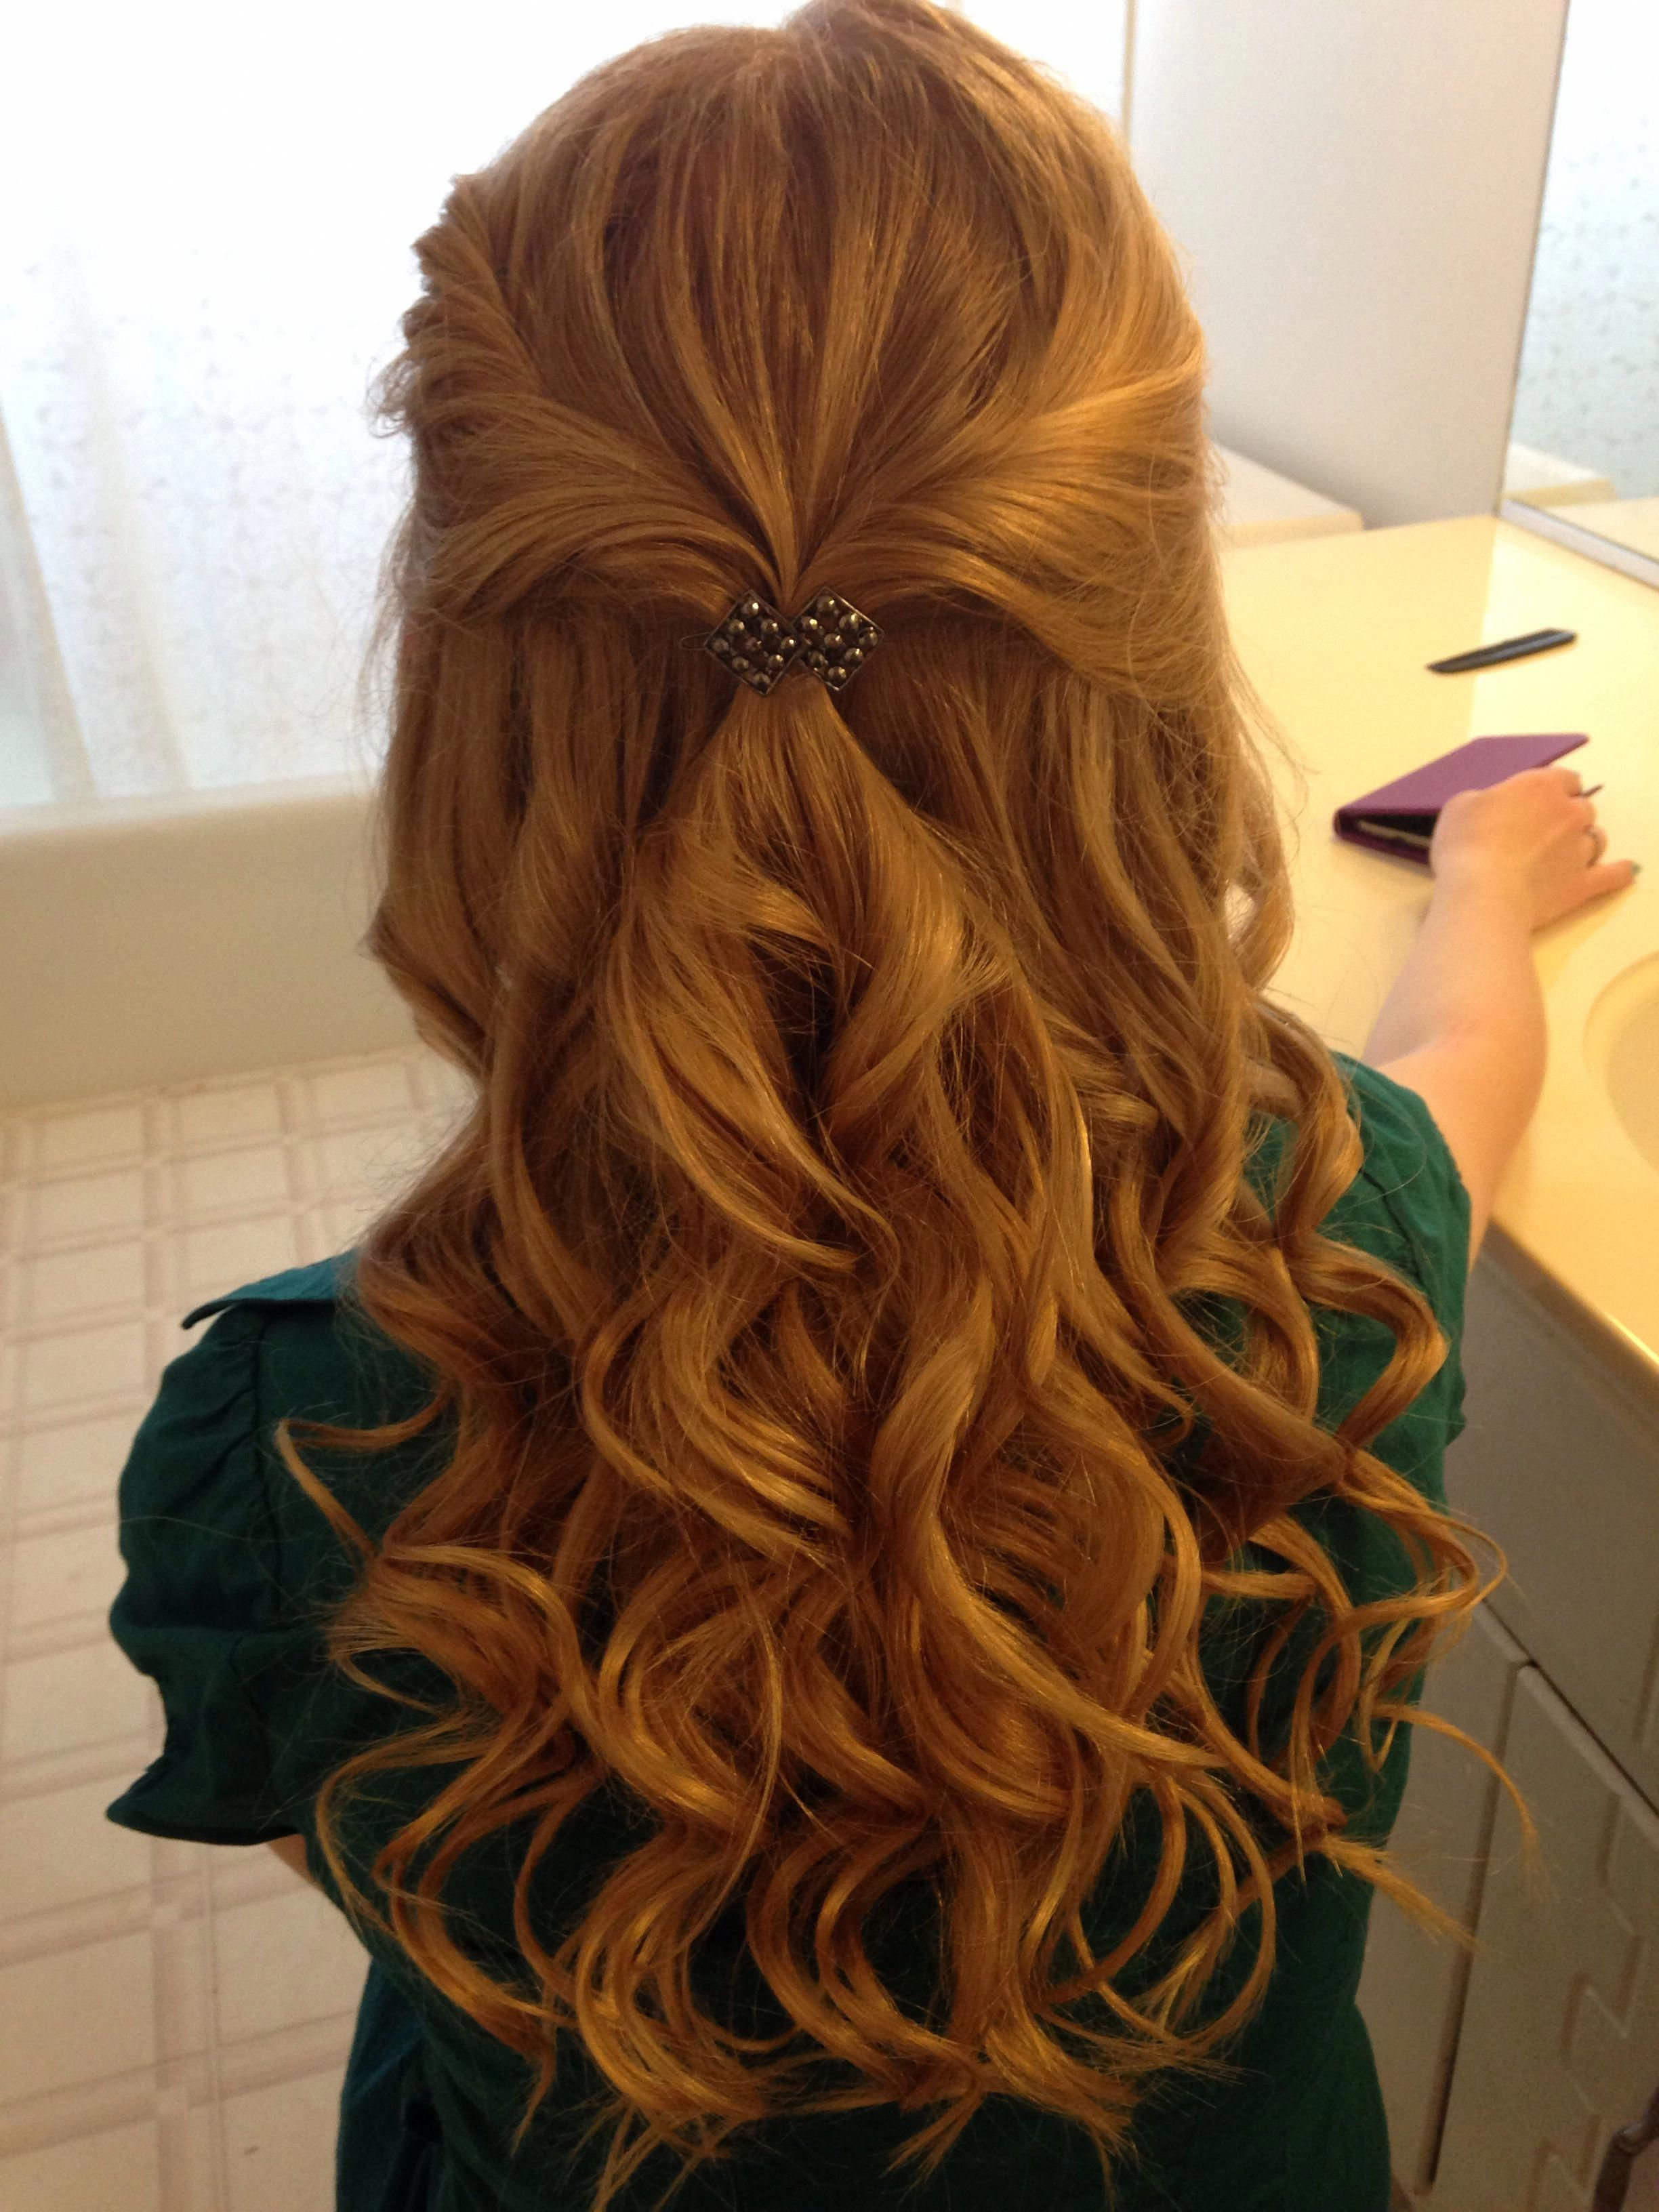 Curly Prom Hair Blonde Half Up Down Simple Homecoming Cute Pretty Beautiful Red Accessories Curly Hair Styles Easy Long Hair Styles Curly Hair Styles